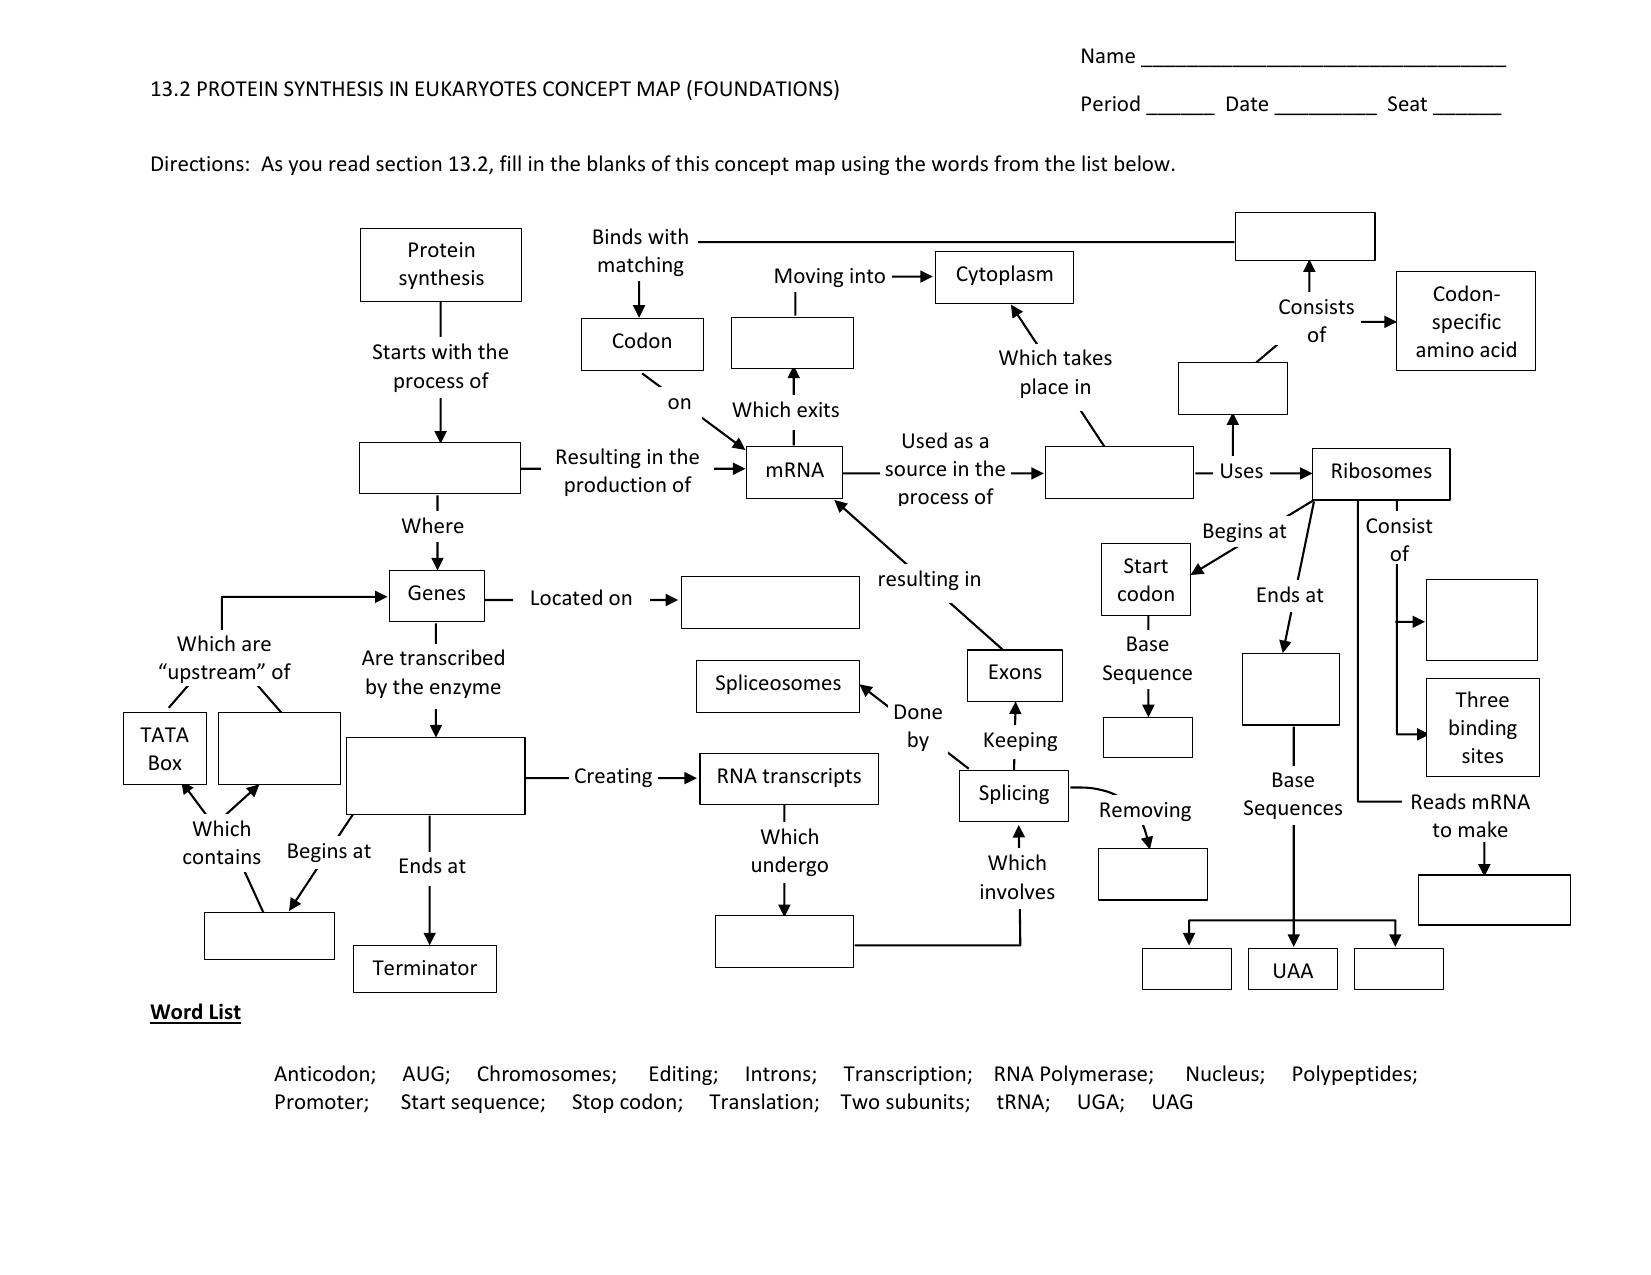 Translation Concept Map.Protein Synthesis Concept Map